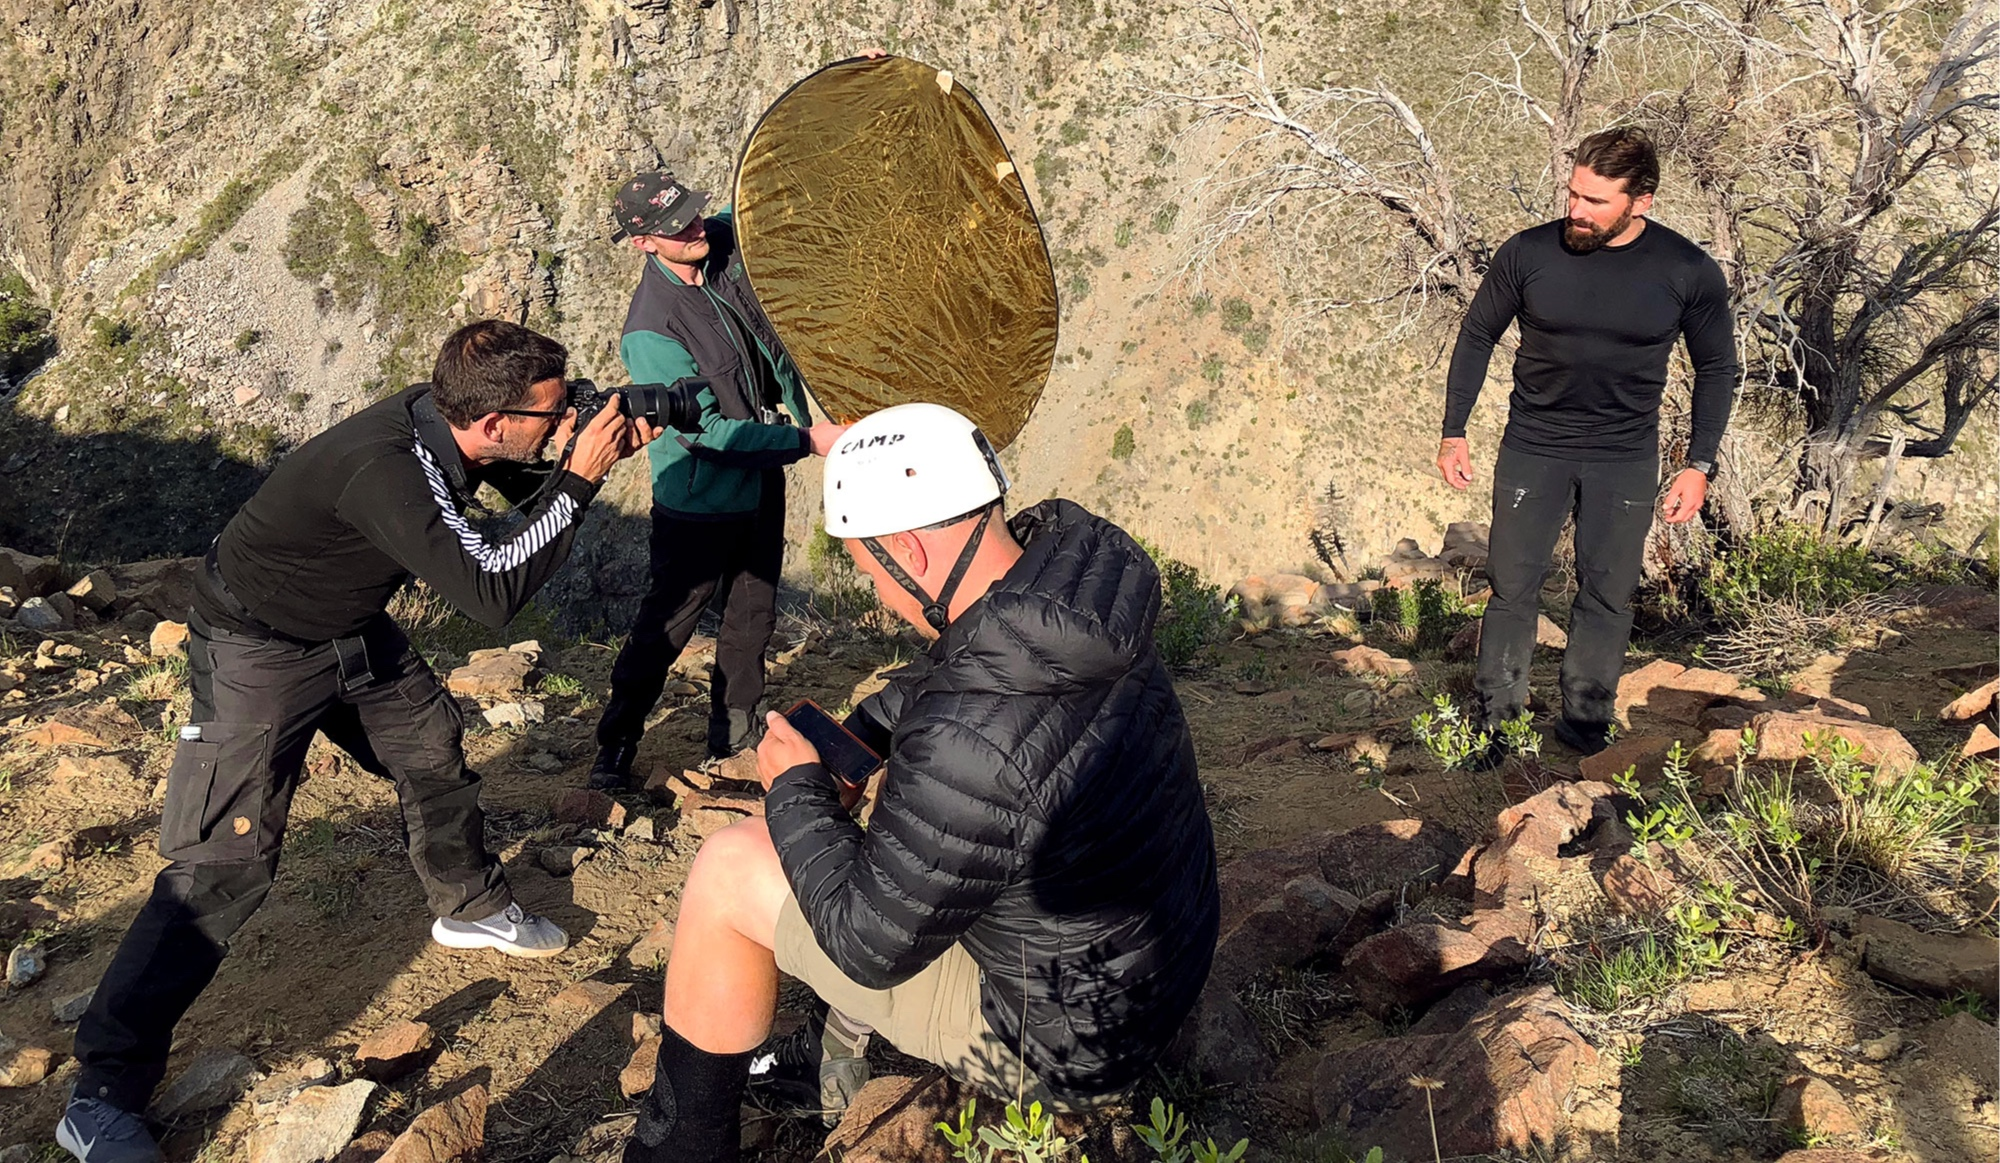 On location with Ant Middleton in Chile for SAS: Who Dares Wins.